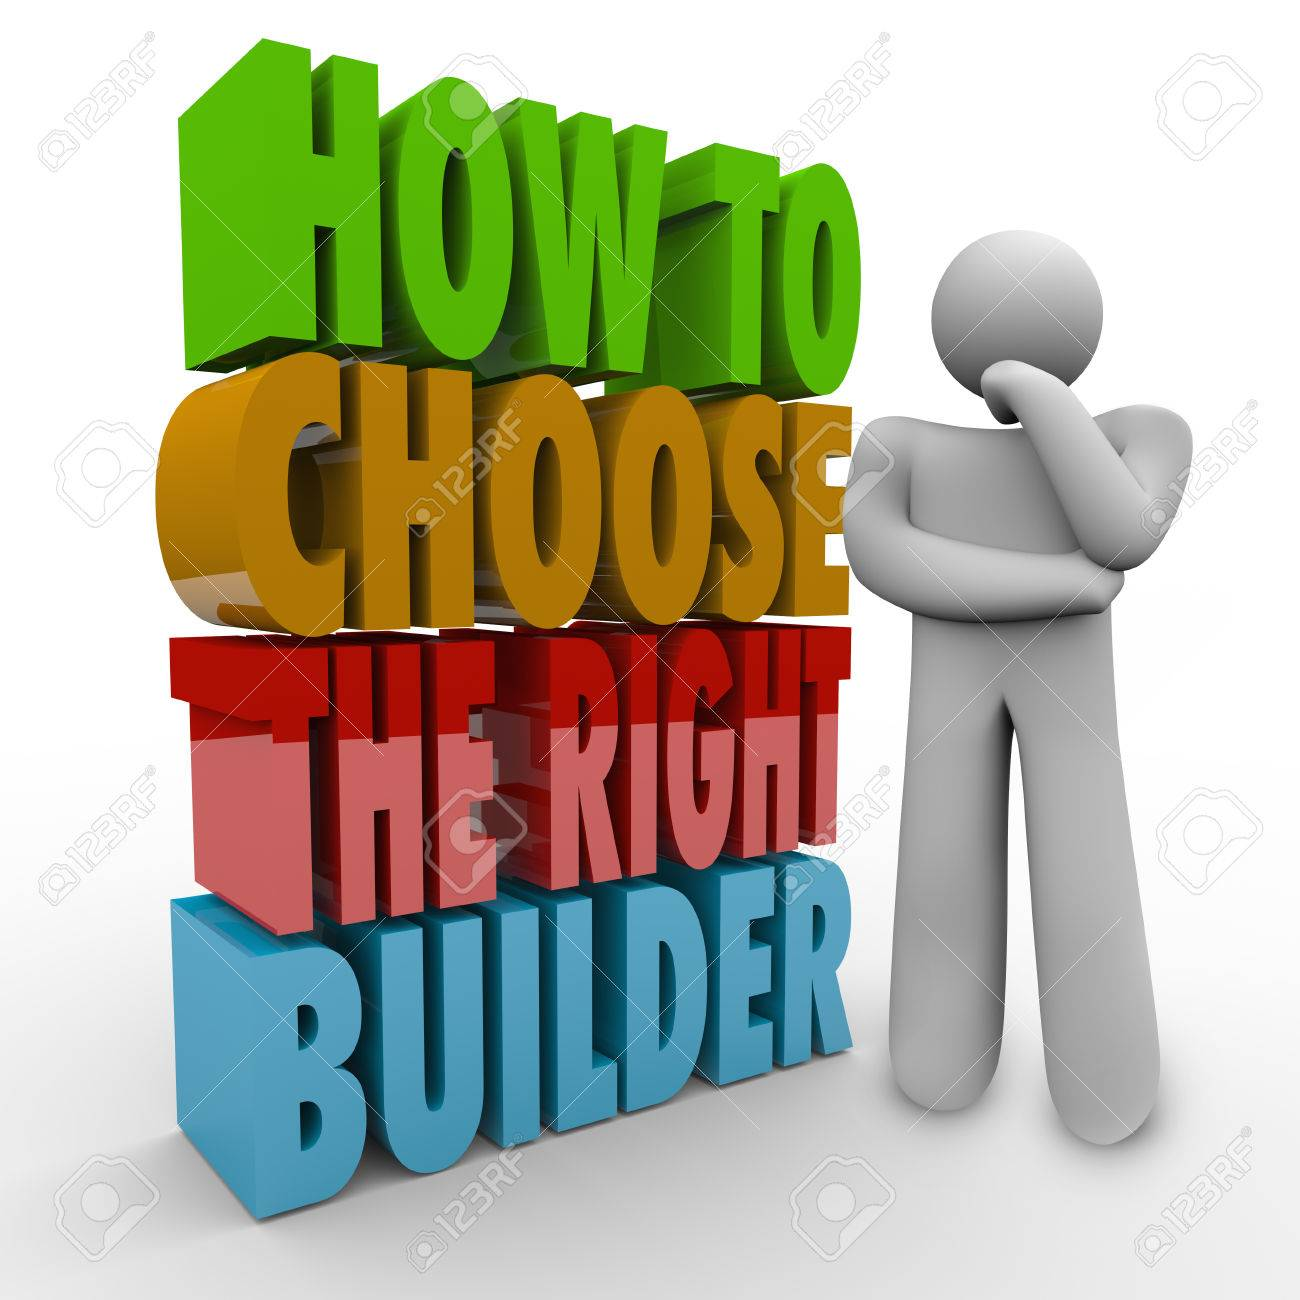 how to choose the right builder words in 3d letters next to a